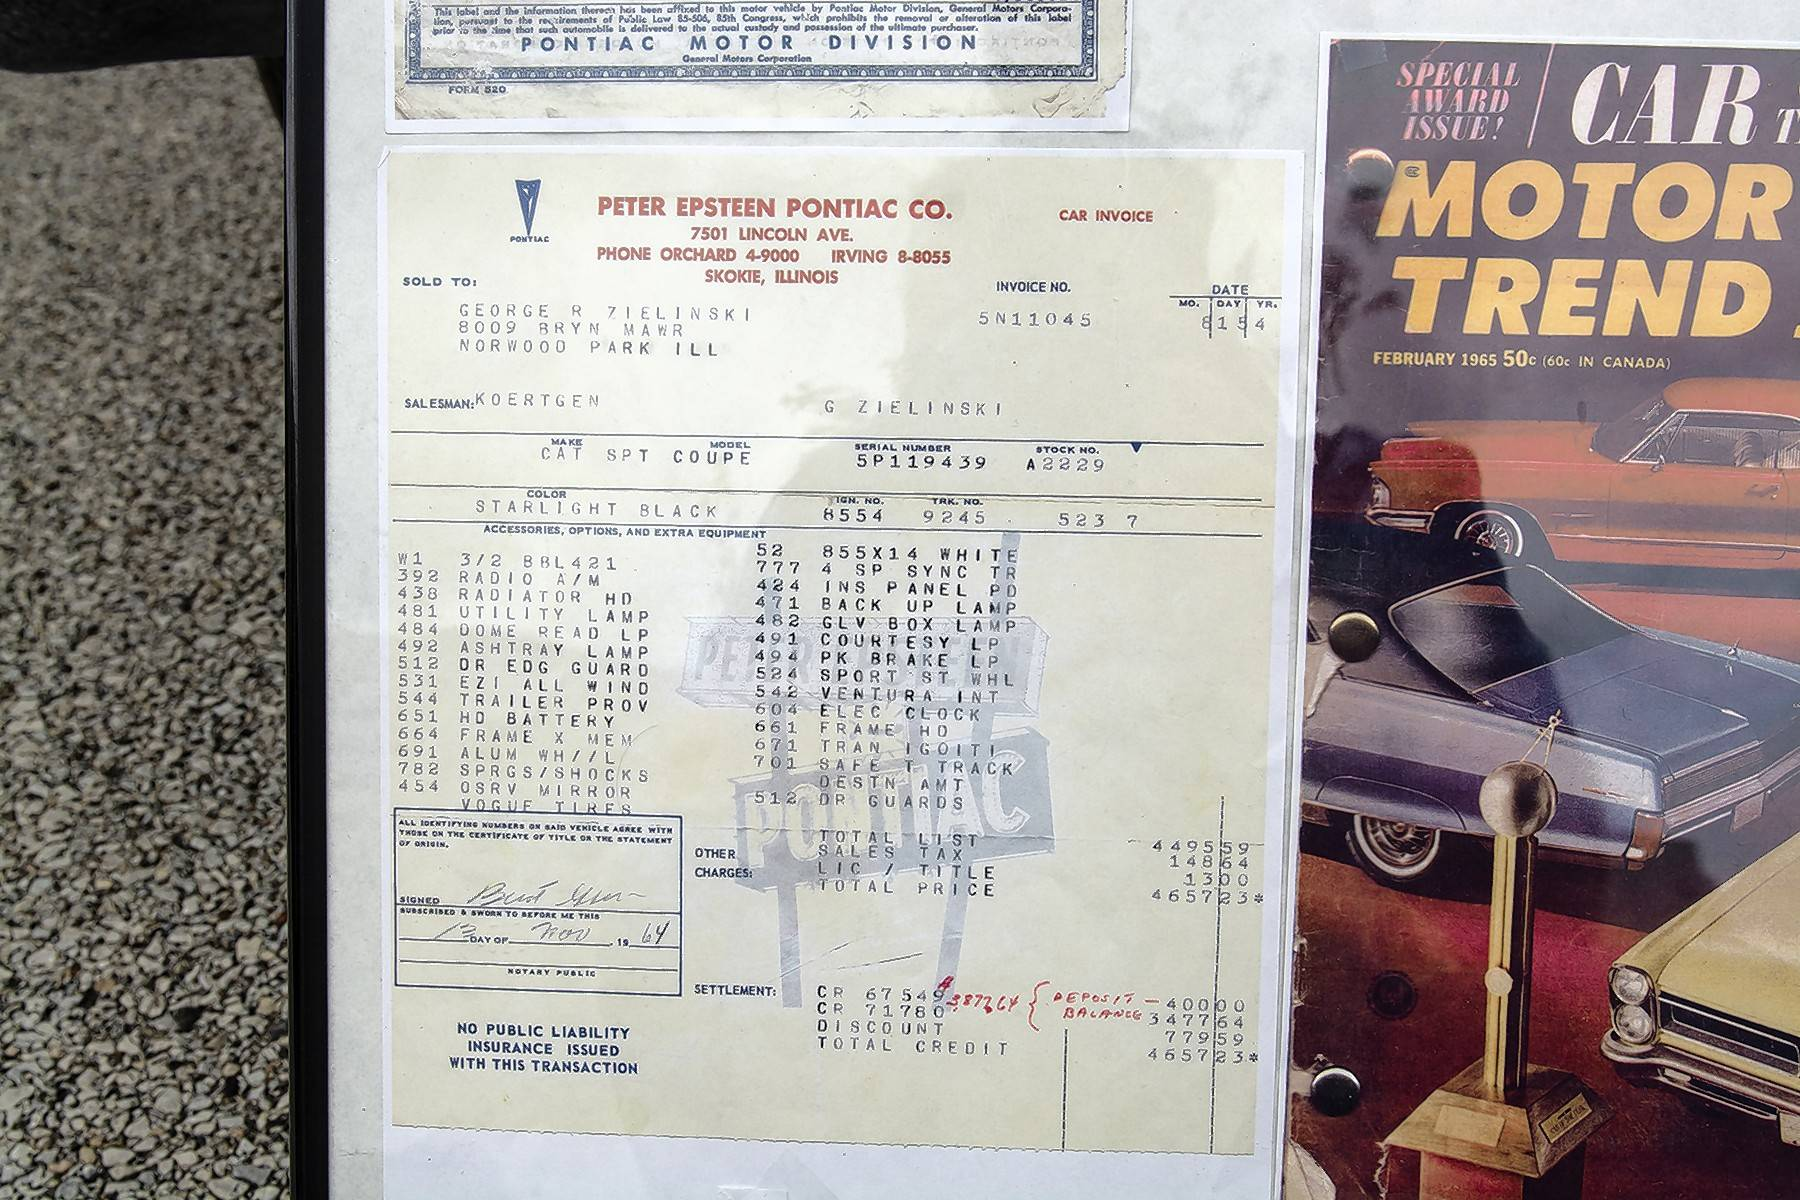 Zielinski kept the Catalina's original window sticker price sheet from Peter Epsteen Pontiac in Skokie, where he paid $4,657 for the car.